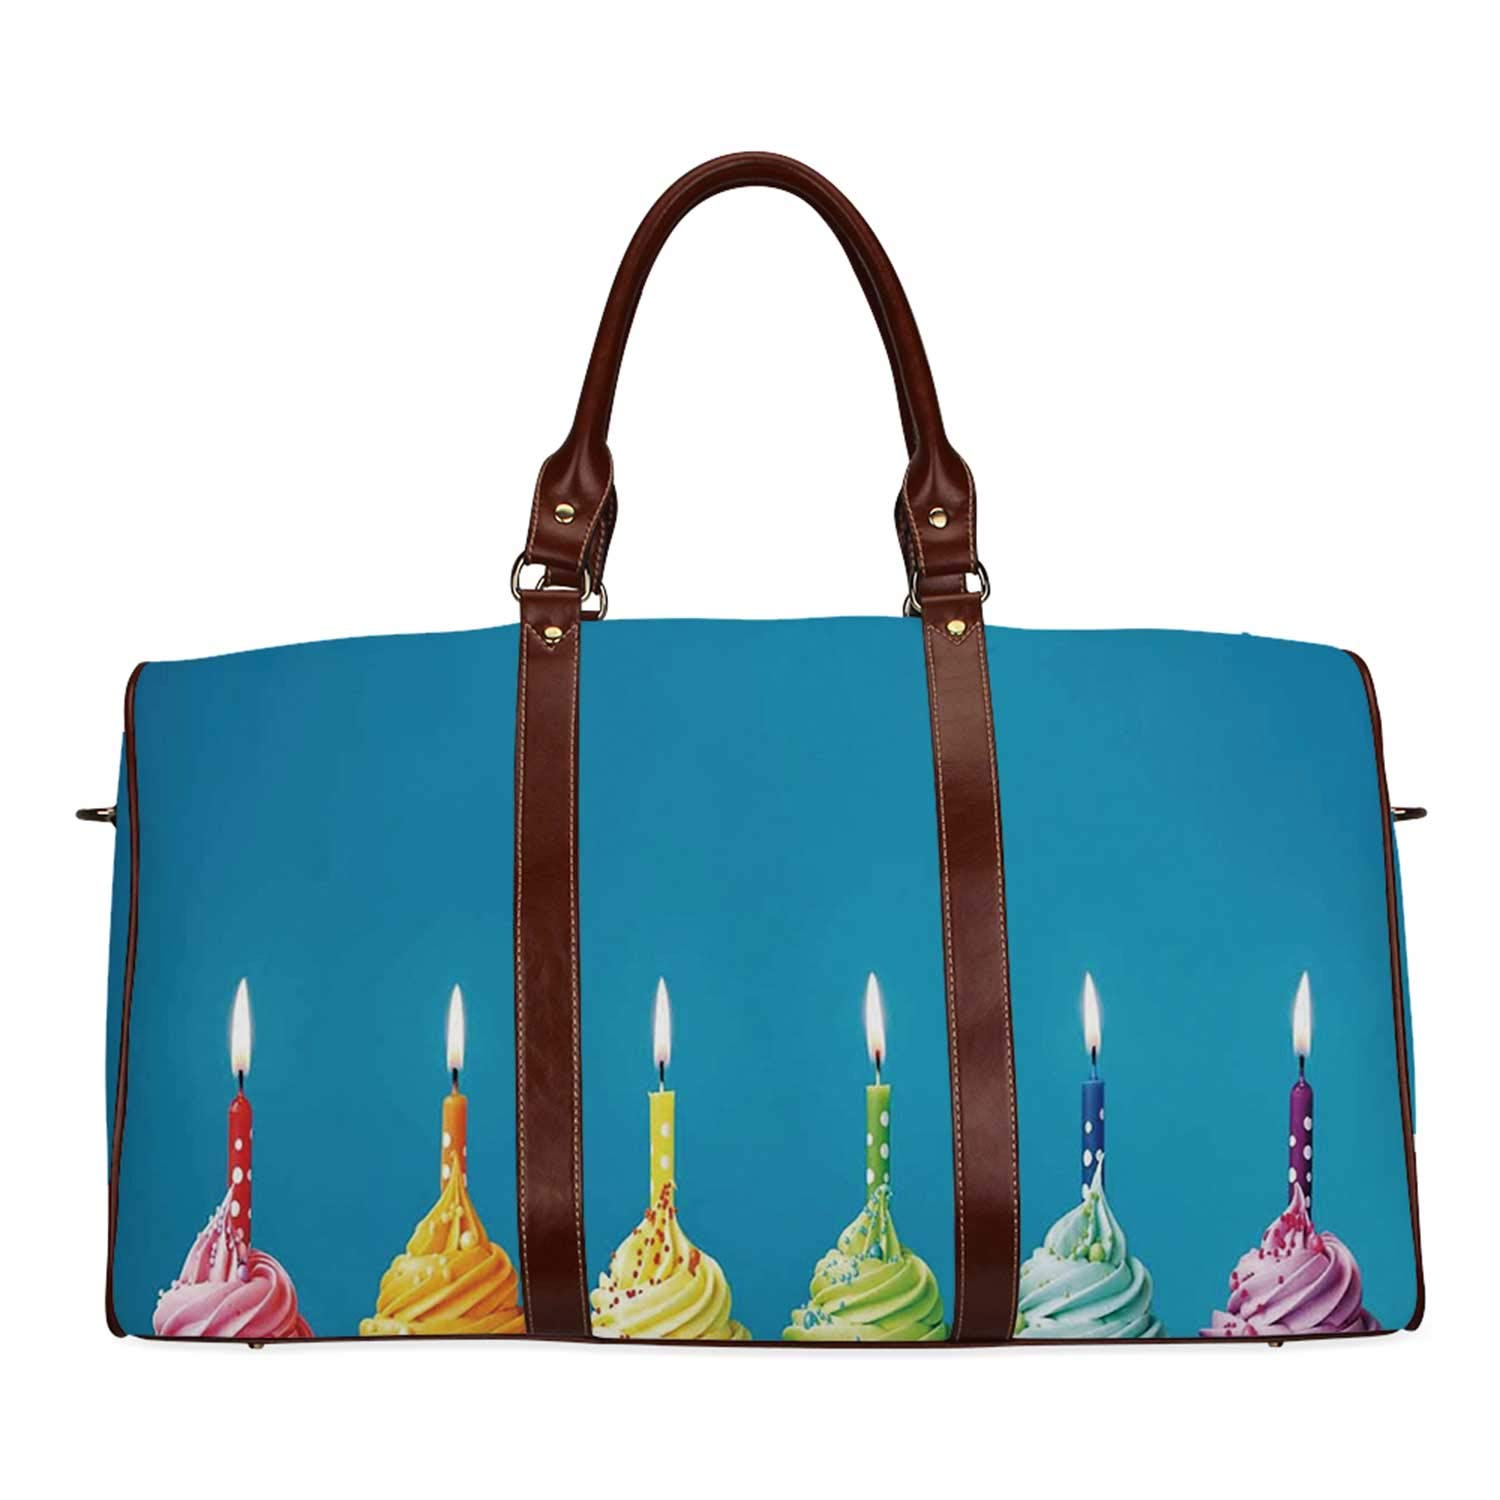 Birthday Decorations Economic Travel Bag,Cupcakes in Rainbow Colors with Candles Fun Homemade Party Food Sweet for Weekend,20.8''L x 12''W x 9.8''H by YOLIYANA